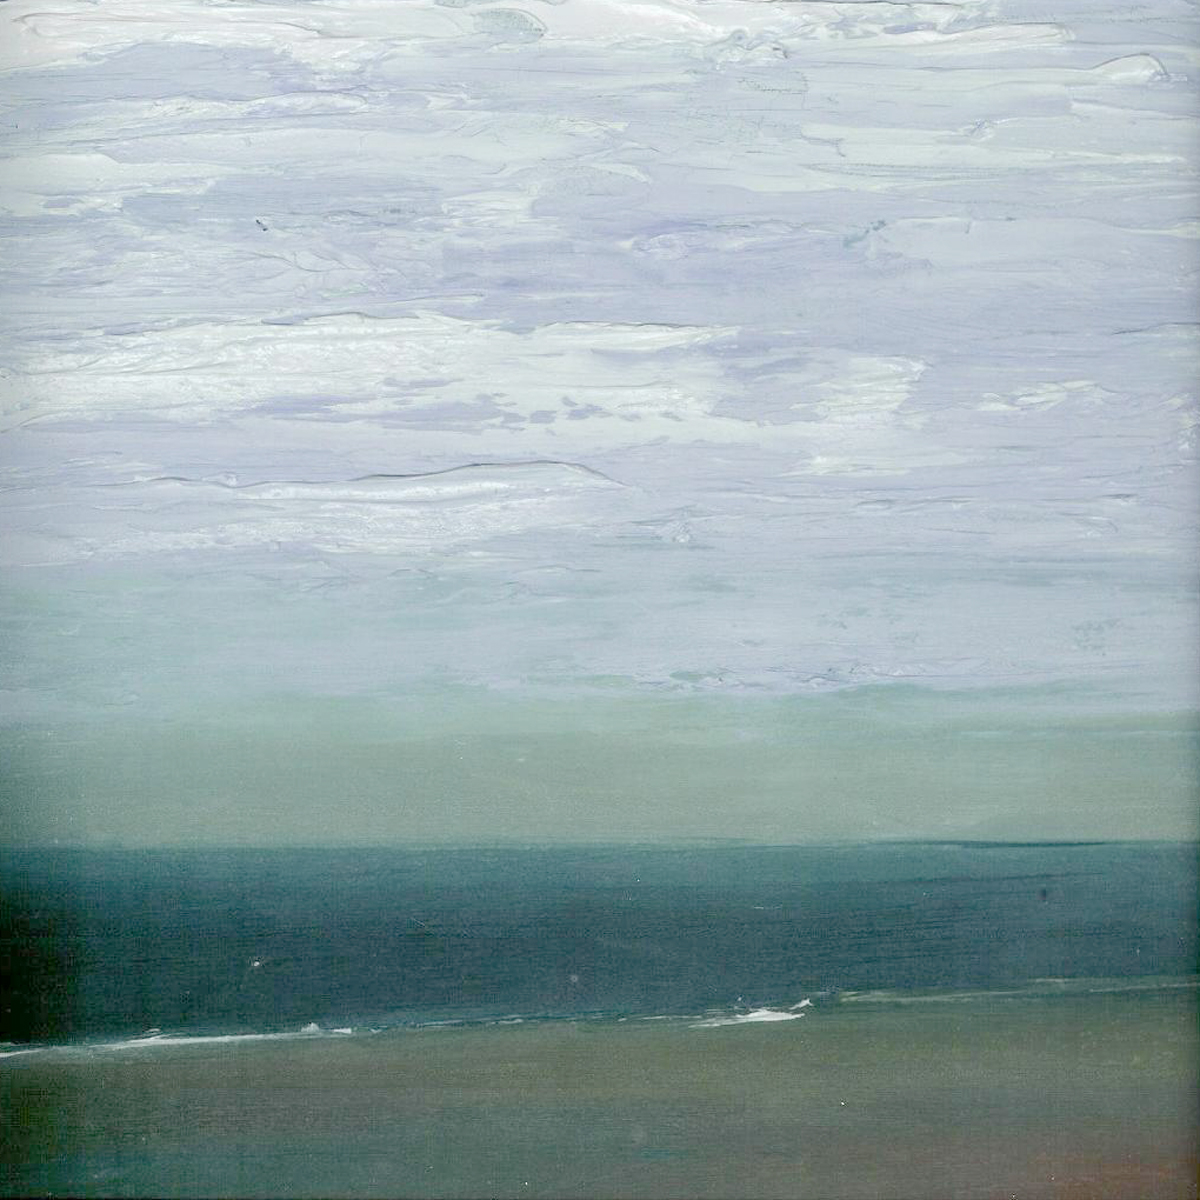 At The Horizon Study 6-17-10, oil-on-board, 8 by 8 inches, 2010 - $750 (sold)